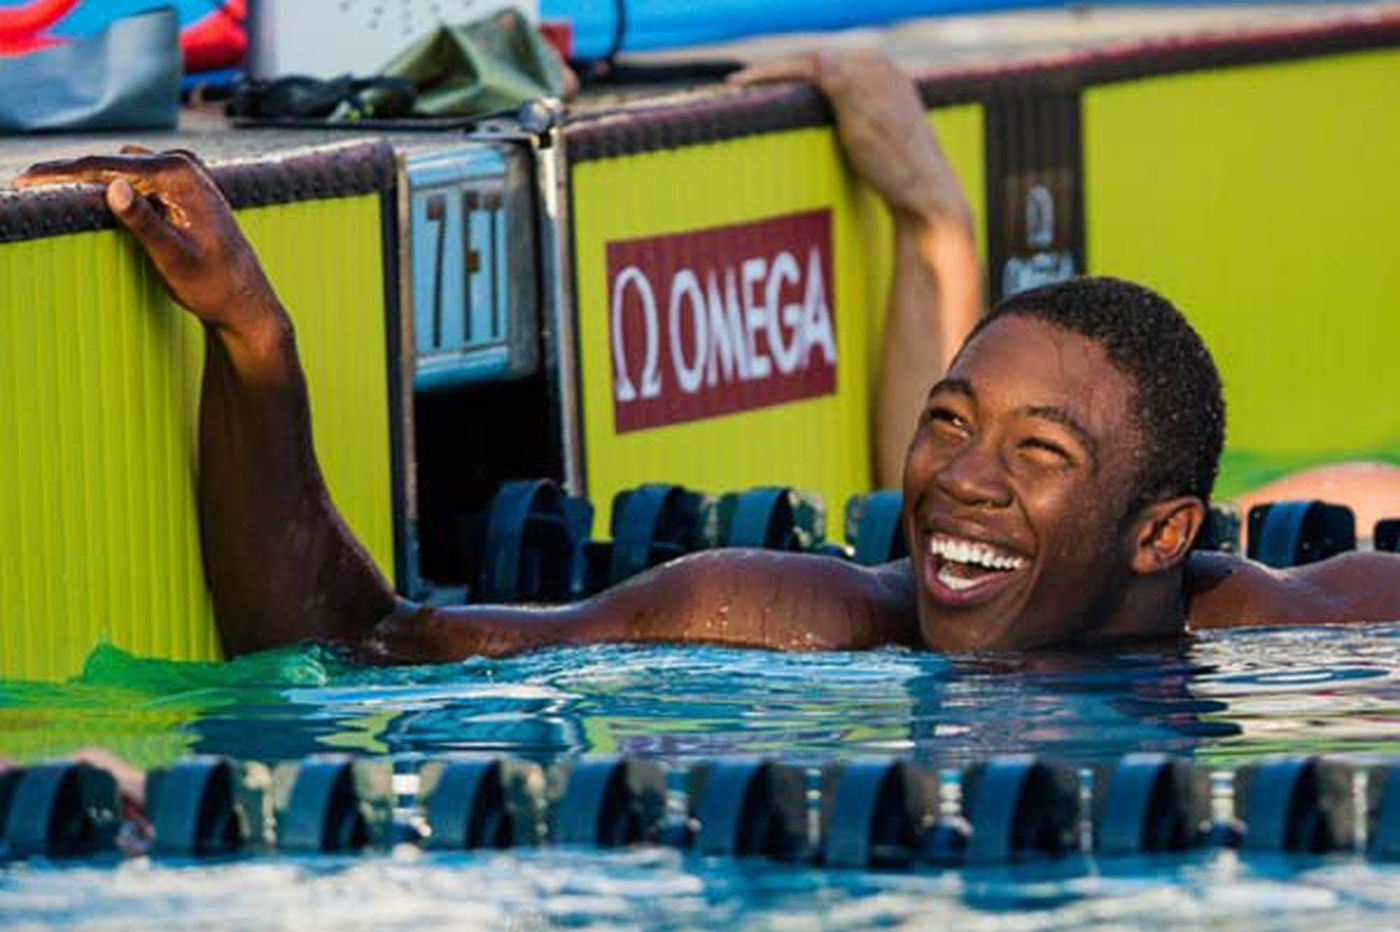 Lafayette Hill swimmer Reece Whitley makes a splash at 14